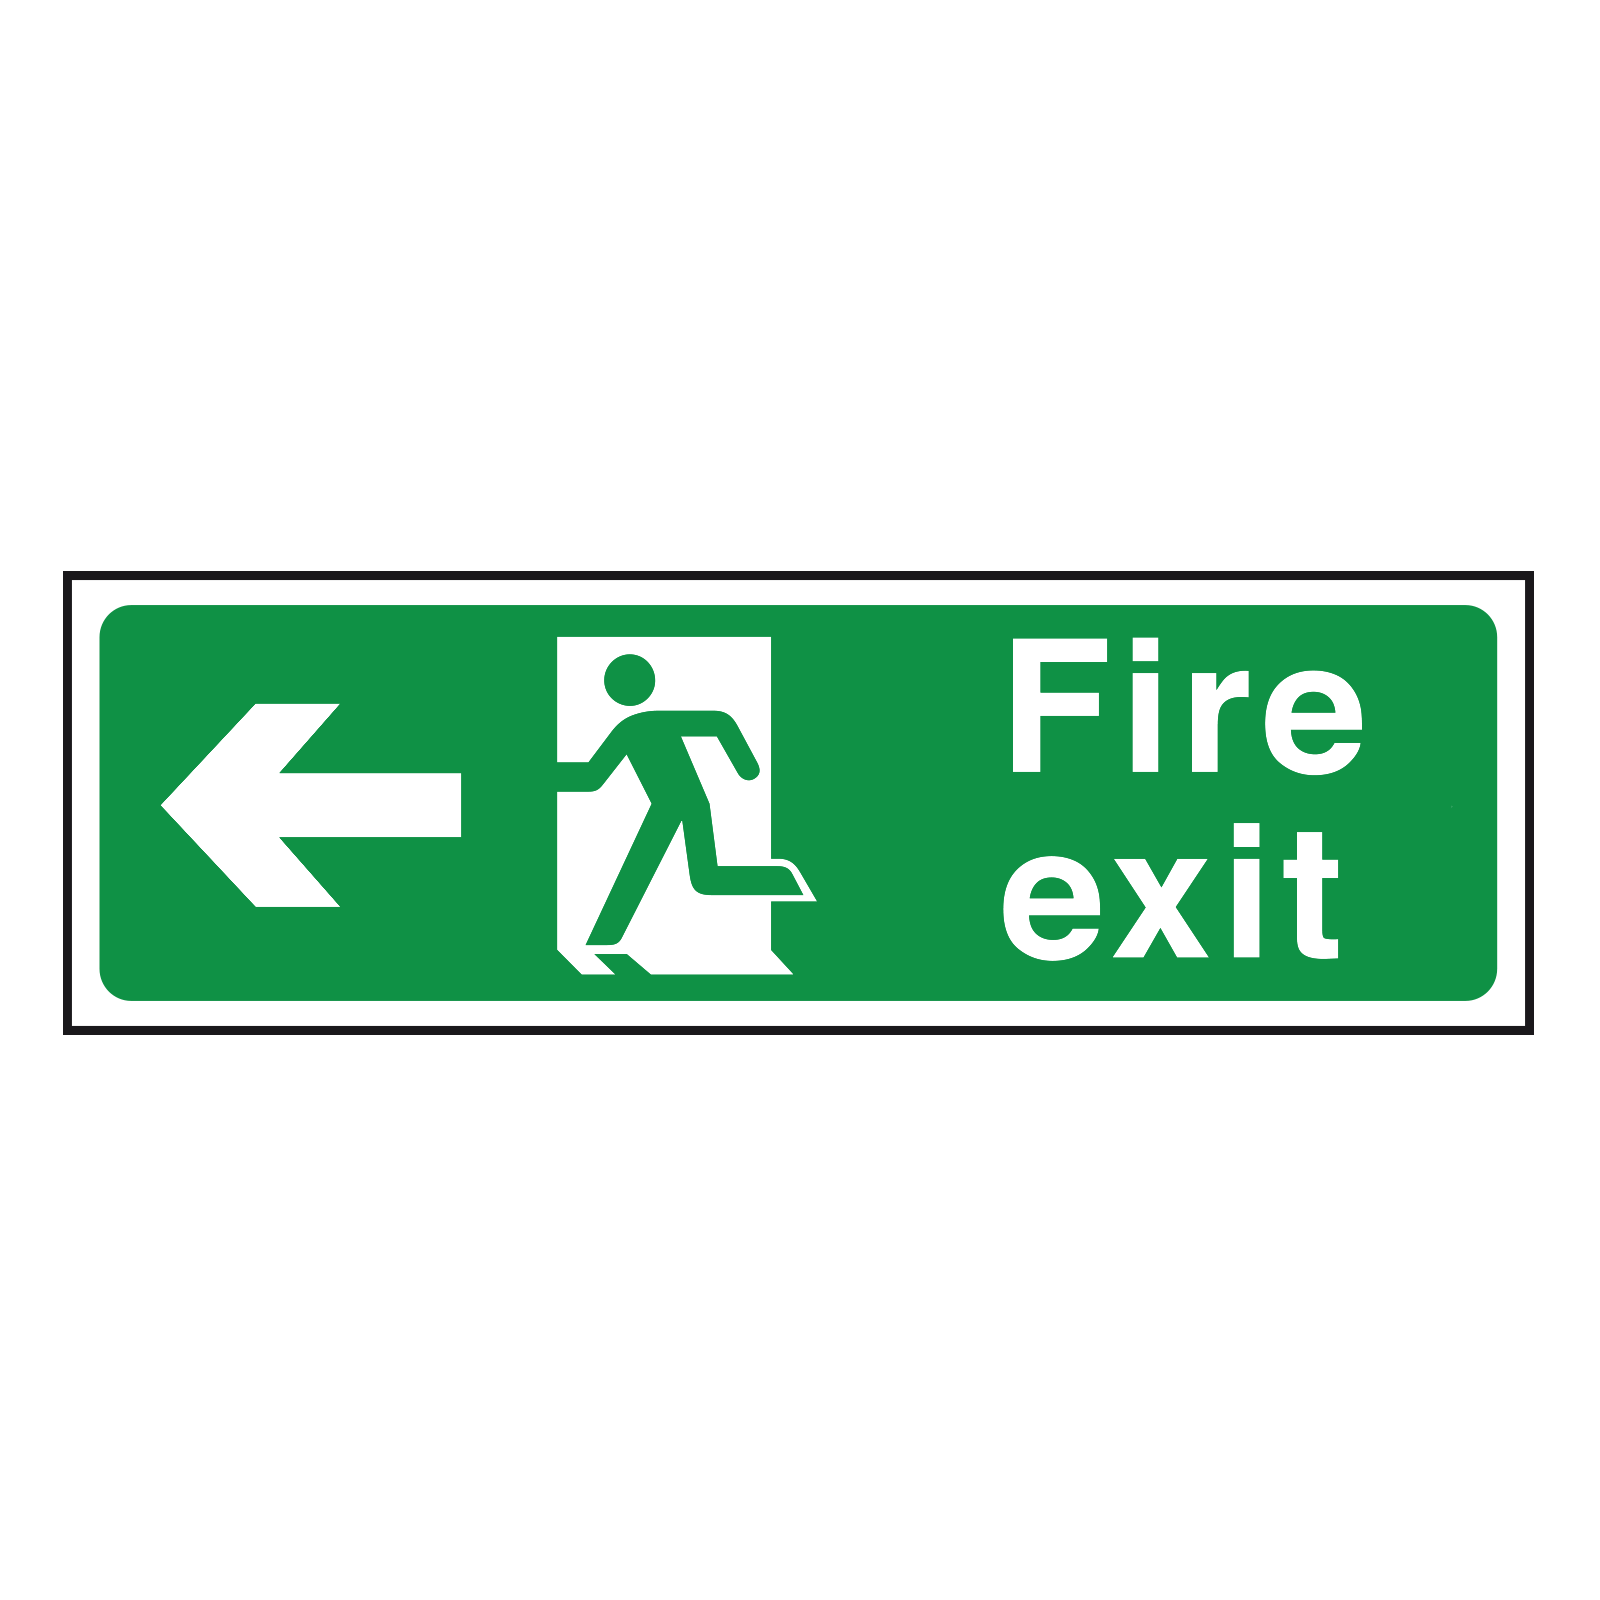 Arrow Left British Standard Fire Exit Sign